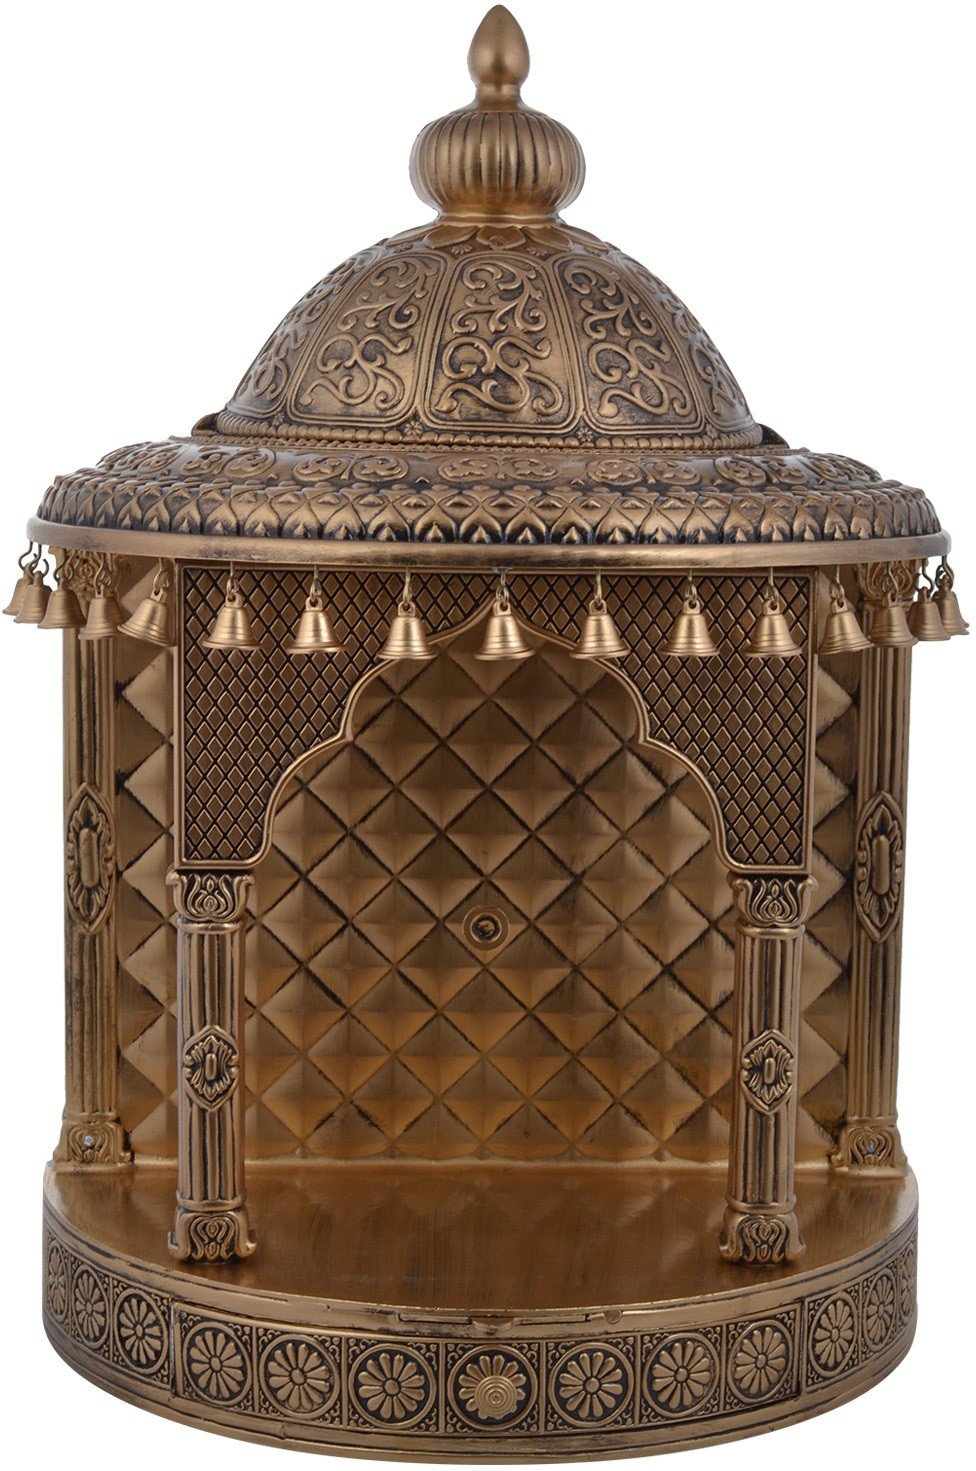 Buy Or Compare Price Sogo Man Mandir Plastic Home Temple Online In India Indiashopps